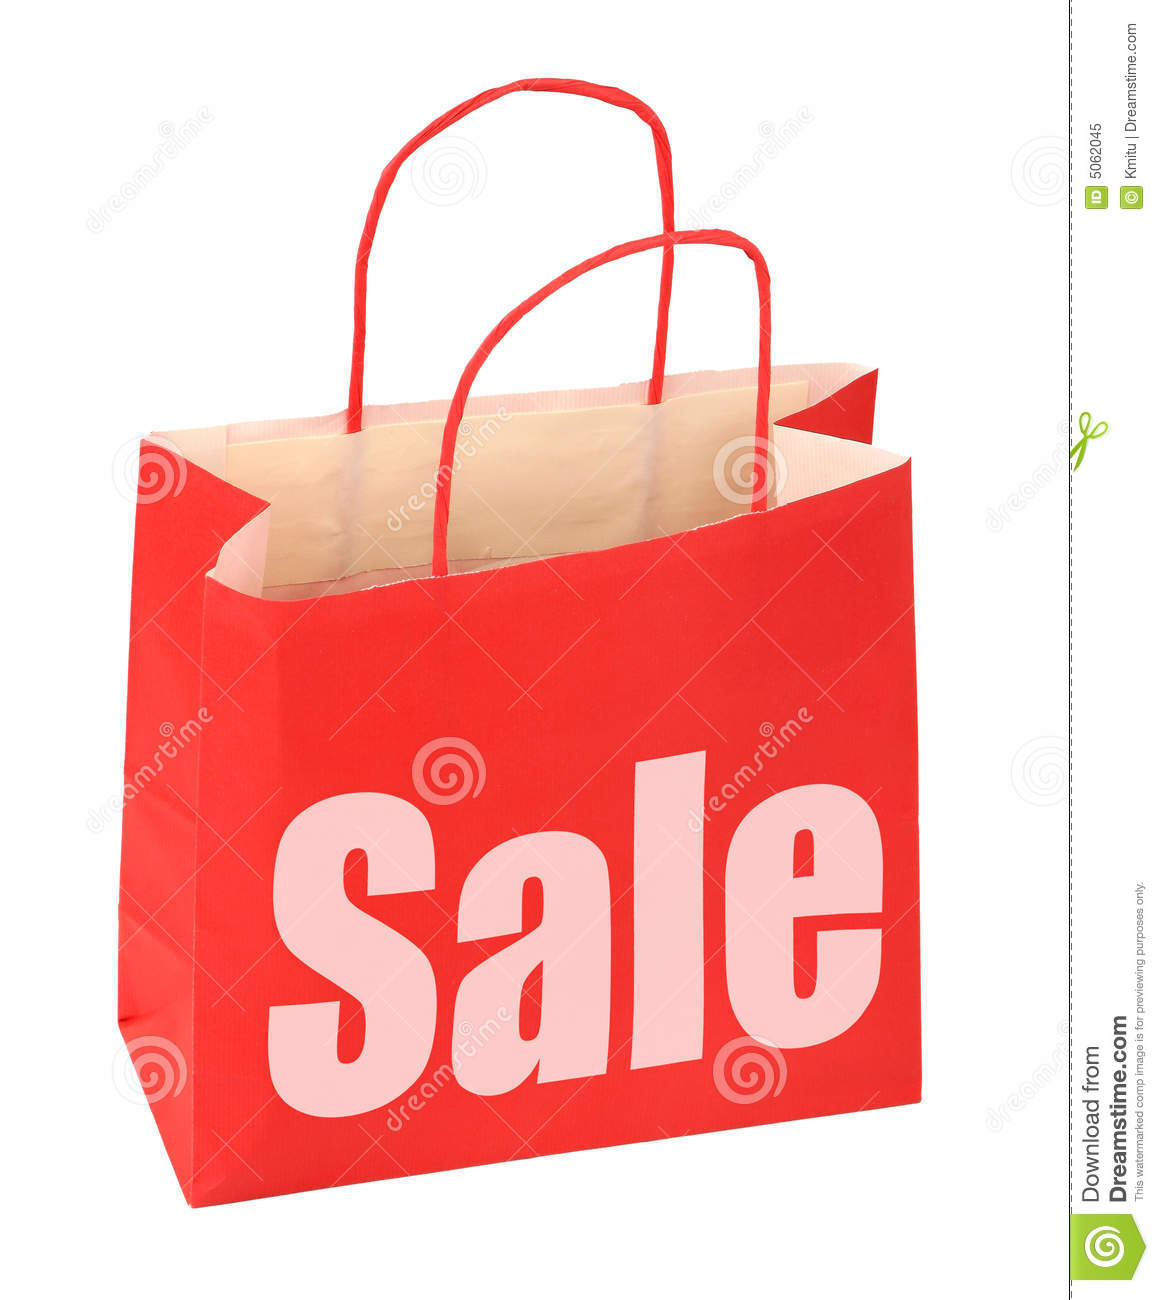 b1510fc531eb Shopping Bag With Red Sale Sign Stock Image - Image of accessories ...